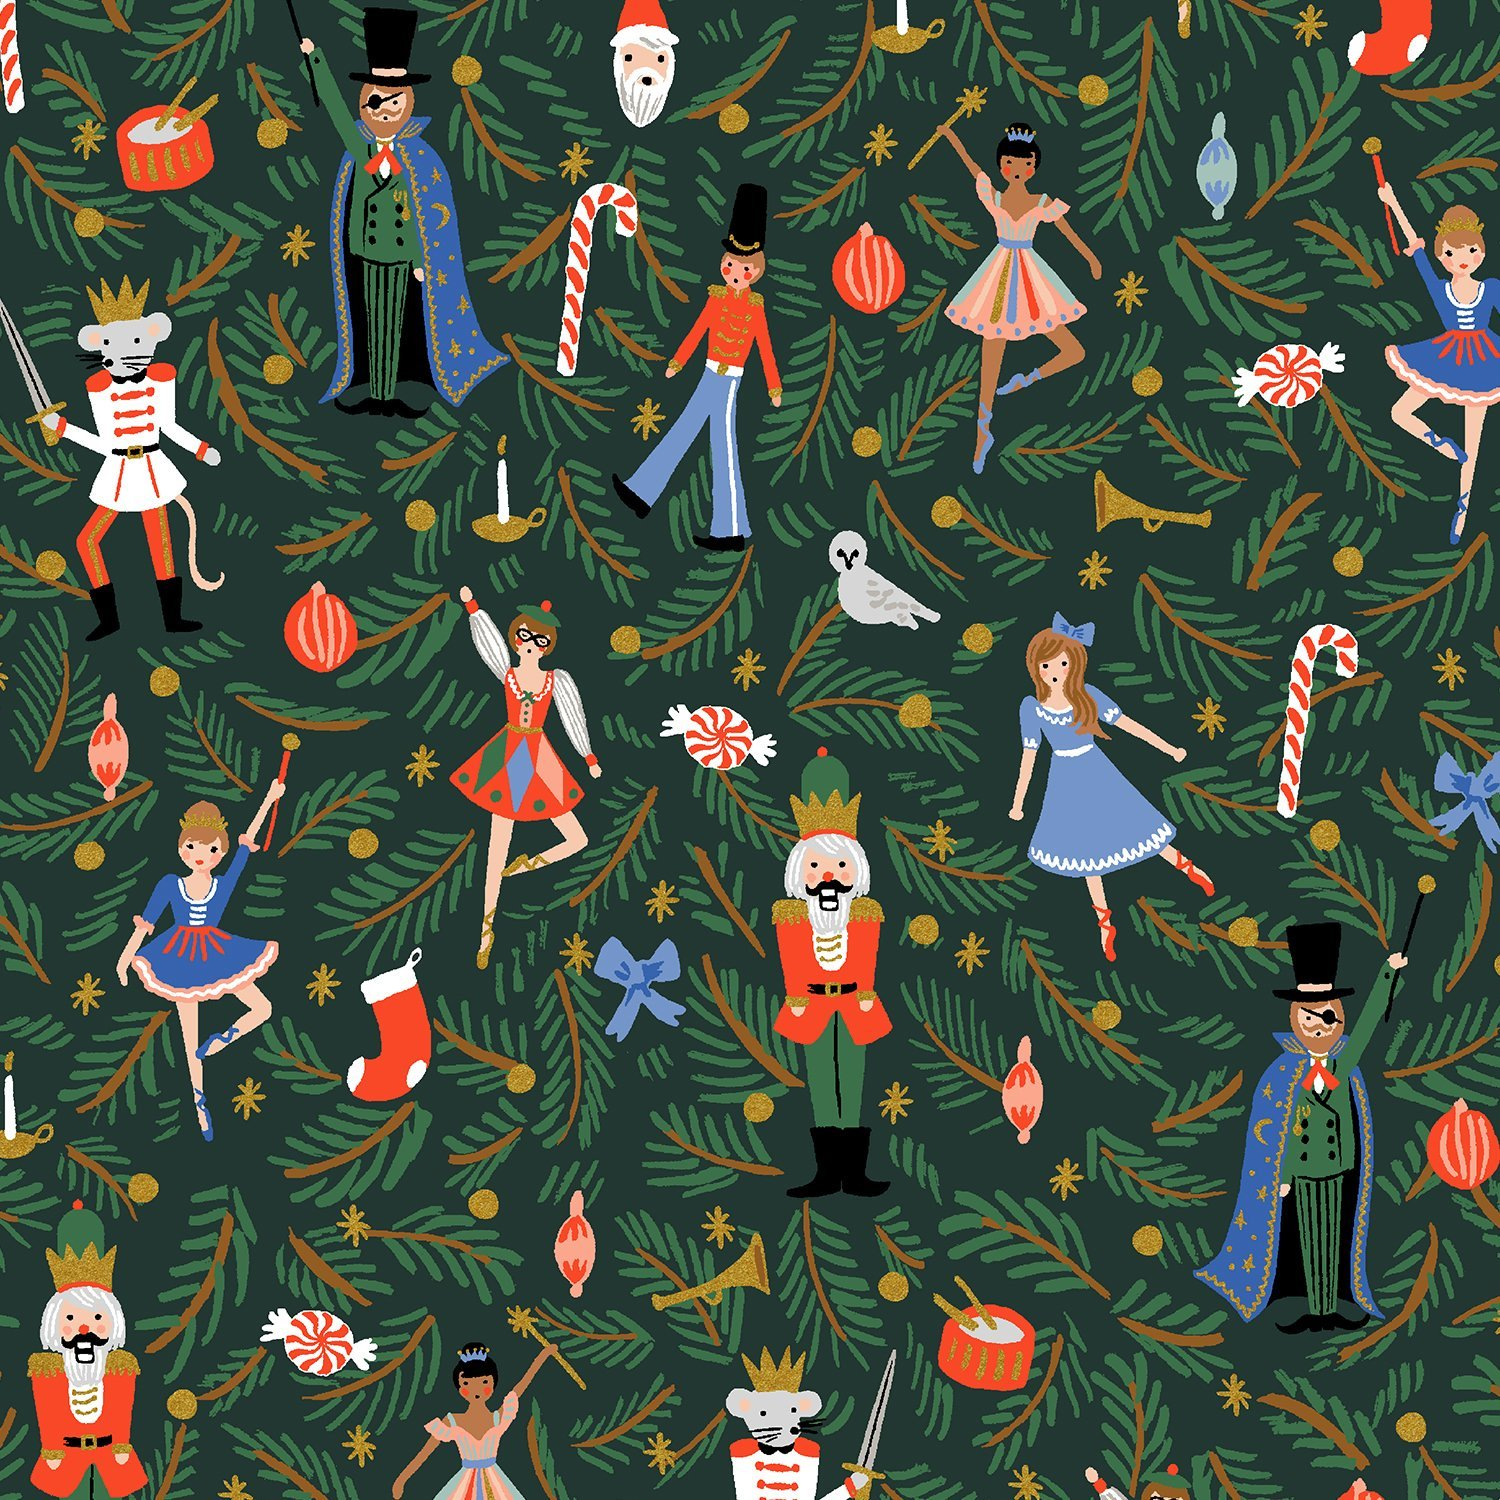 Holiday Classics - Evergreen Metallic Figures by Rifle Paper Co for Cotton & Steel